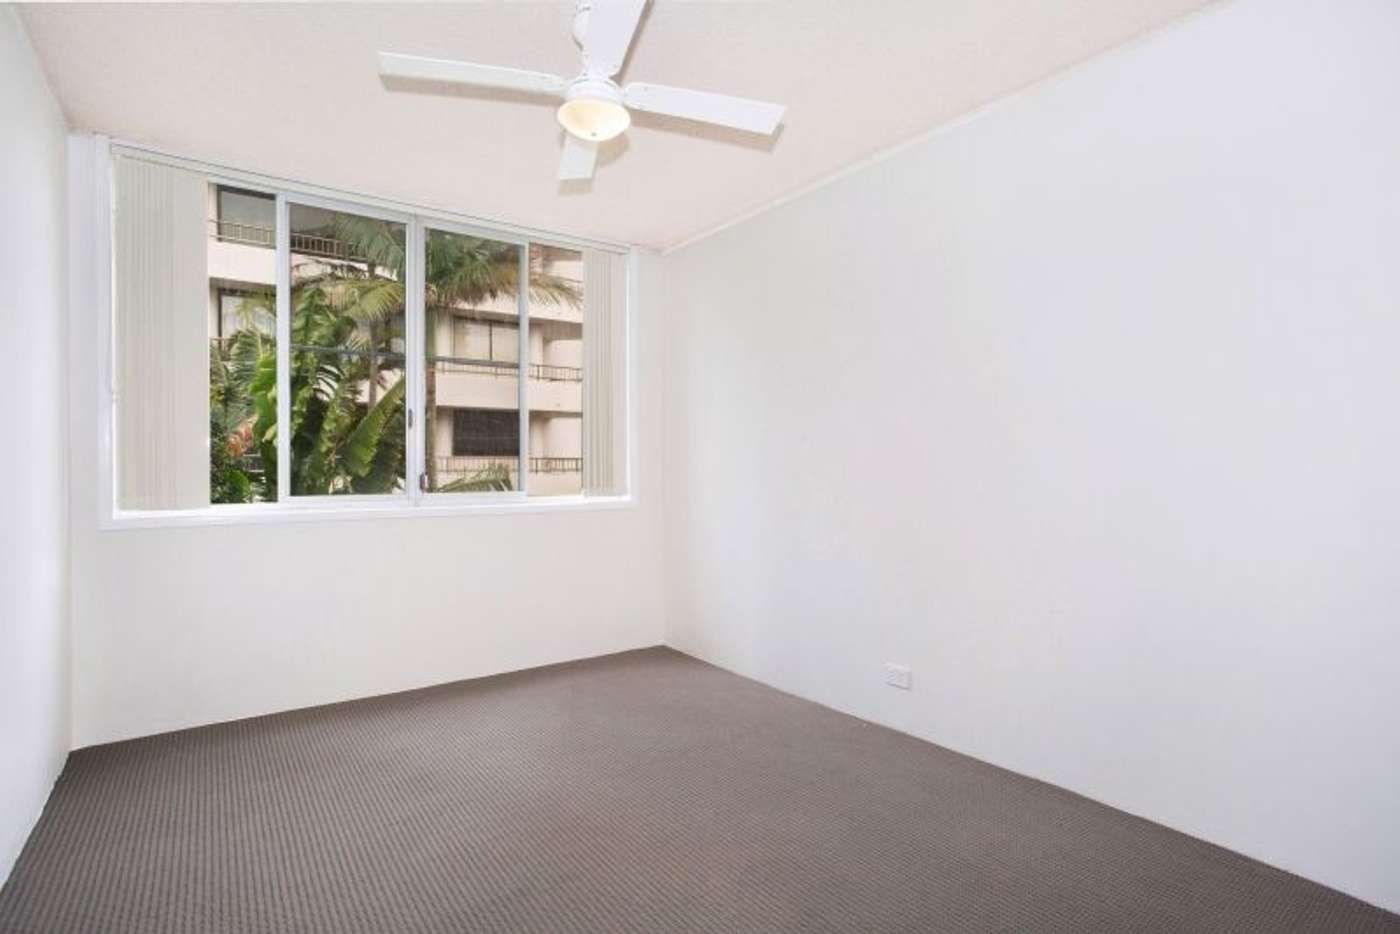 Sixth view of Homely unit listing, 6/26 Aubrey Street, Surfers Paradise QLD 4217